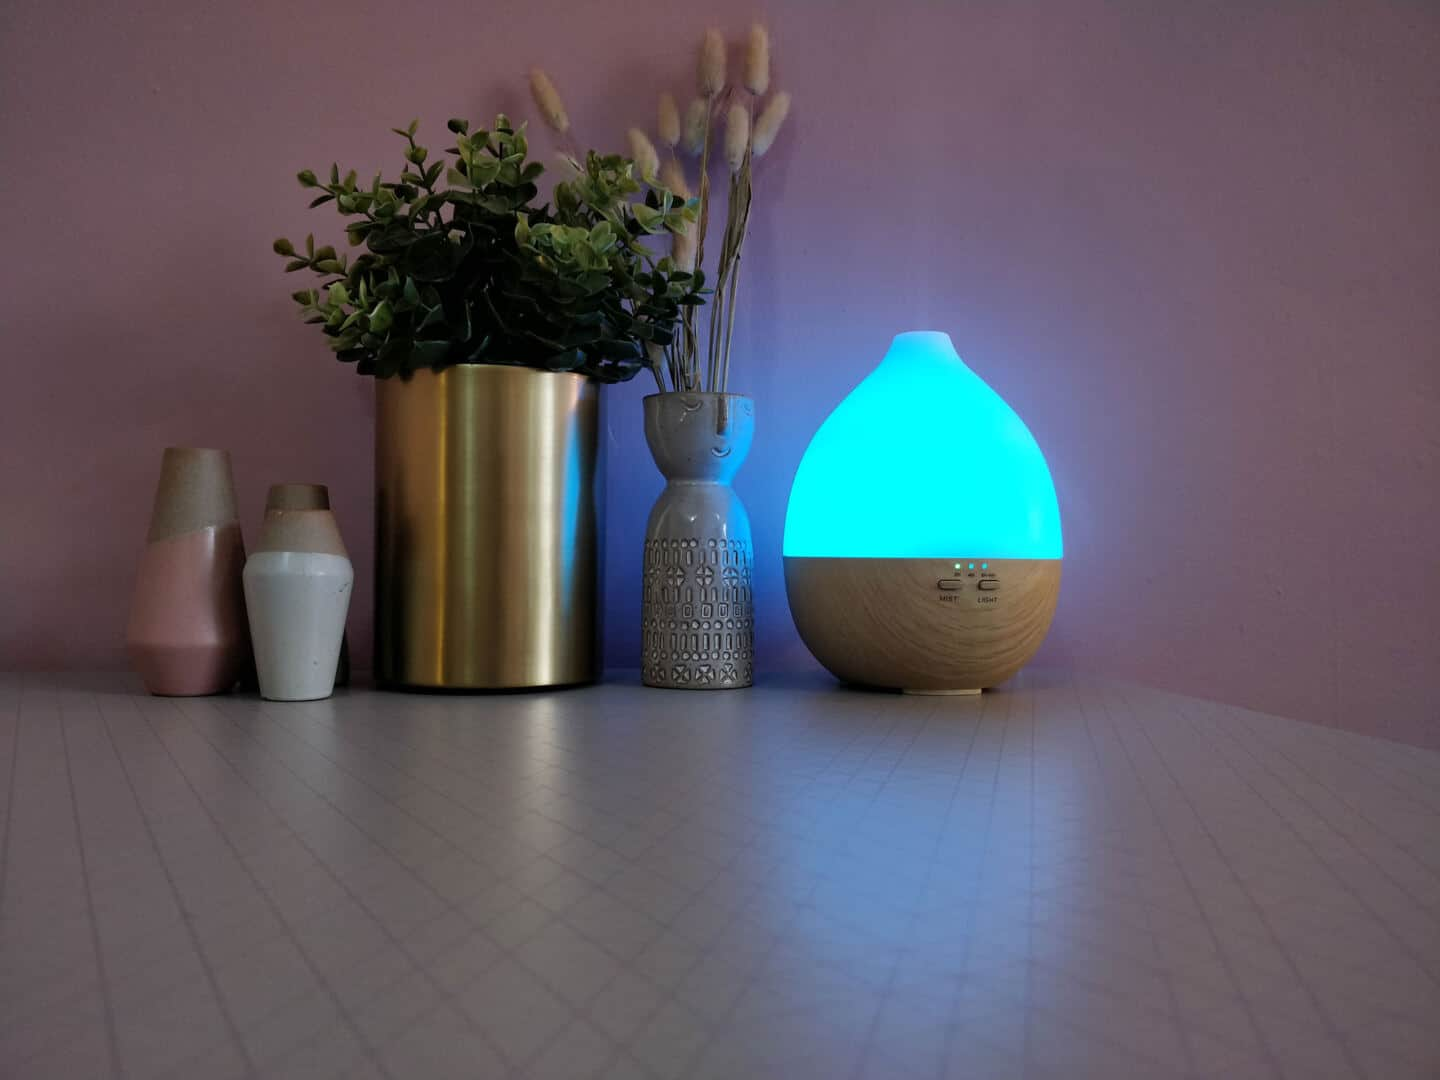 Give your home a spring spruce up by adding scent. An aroma diffuser with light sits on a table next to plants and little vases.